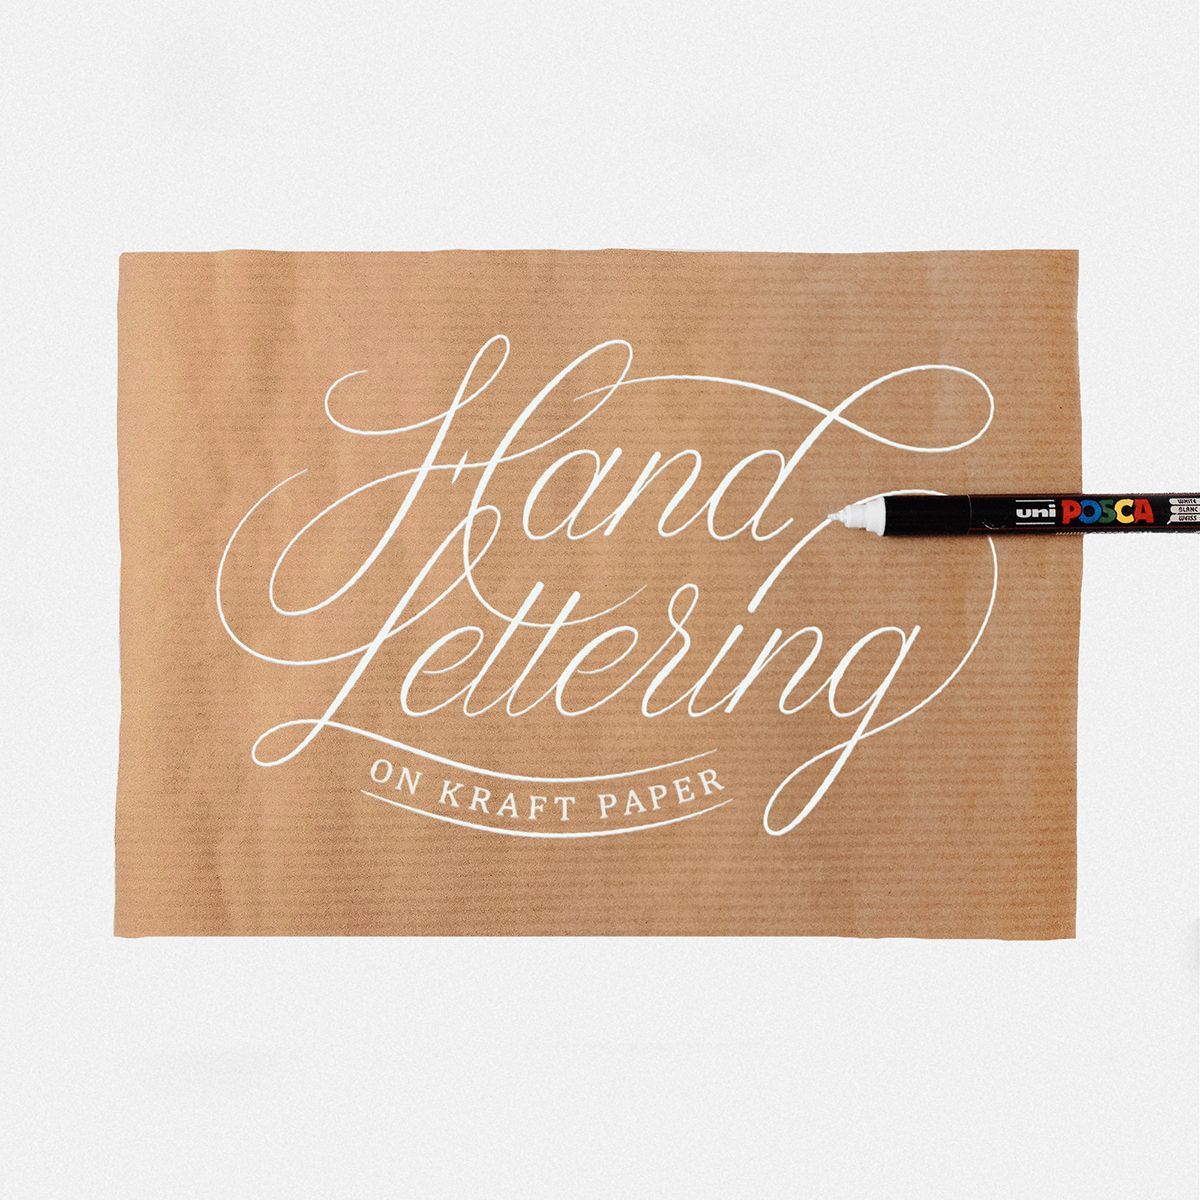 James Lewis Handlettering Collection On Behance